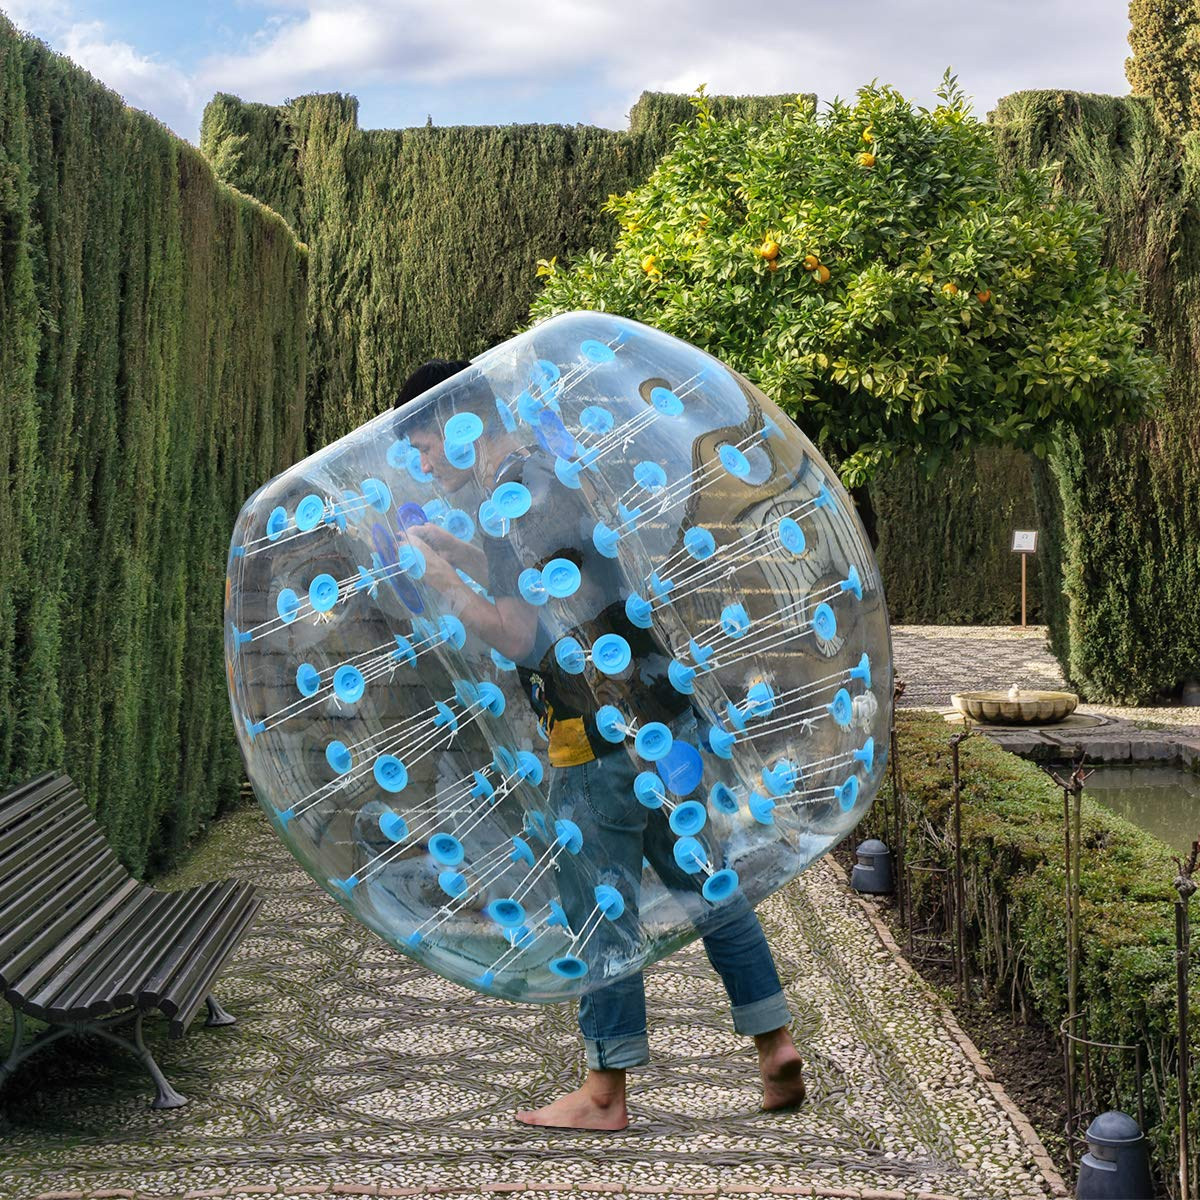 Costzon Inflatable Bumper Soccer Ball, Dia 5ft (1.5m) Giant Human Hamster Bubble Ball, 8mm Thickness Transparent PVC Zorb Ball for Kids, Teens Outdoor Team Gaming Play (Light Blue) by Costzon (Image #1)